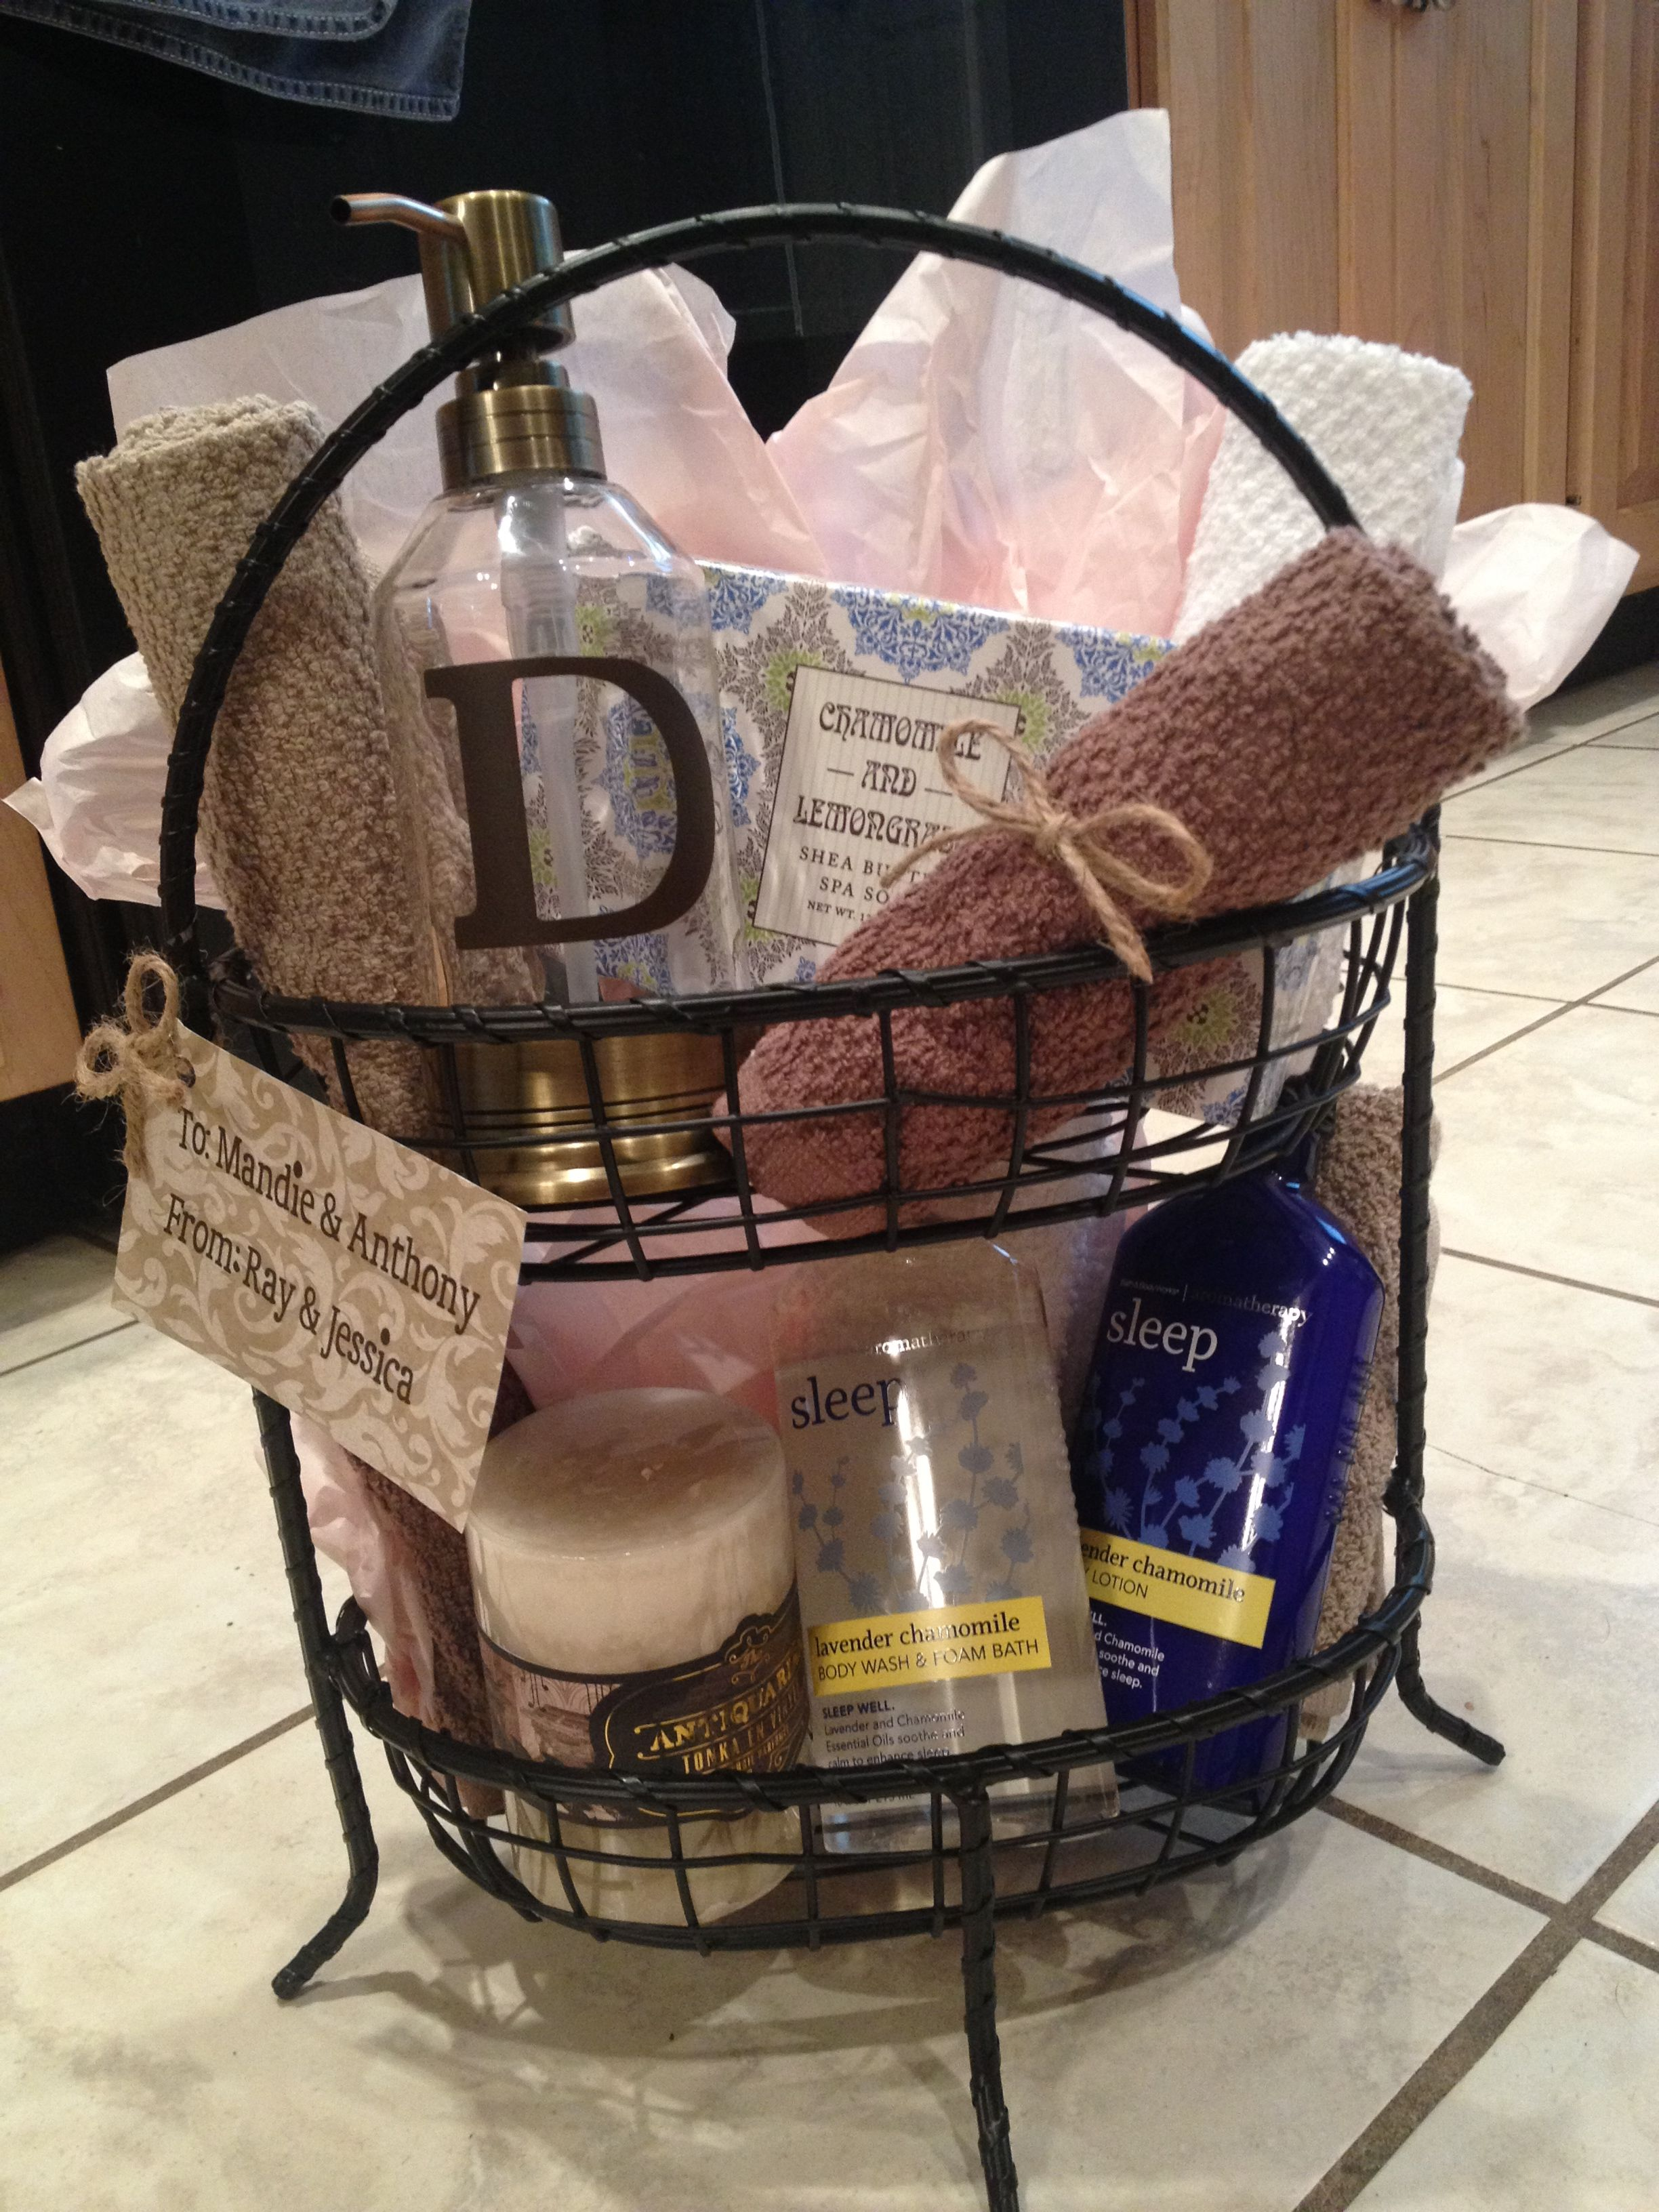 DIY gift basket. I made this for a wedding shower gift